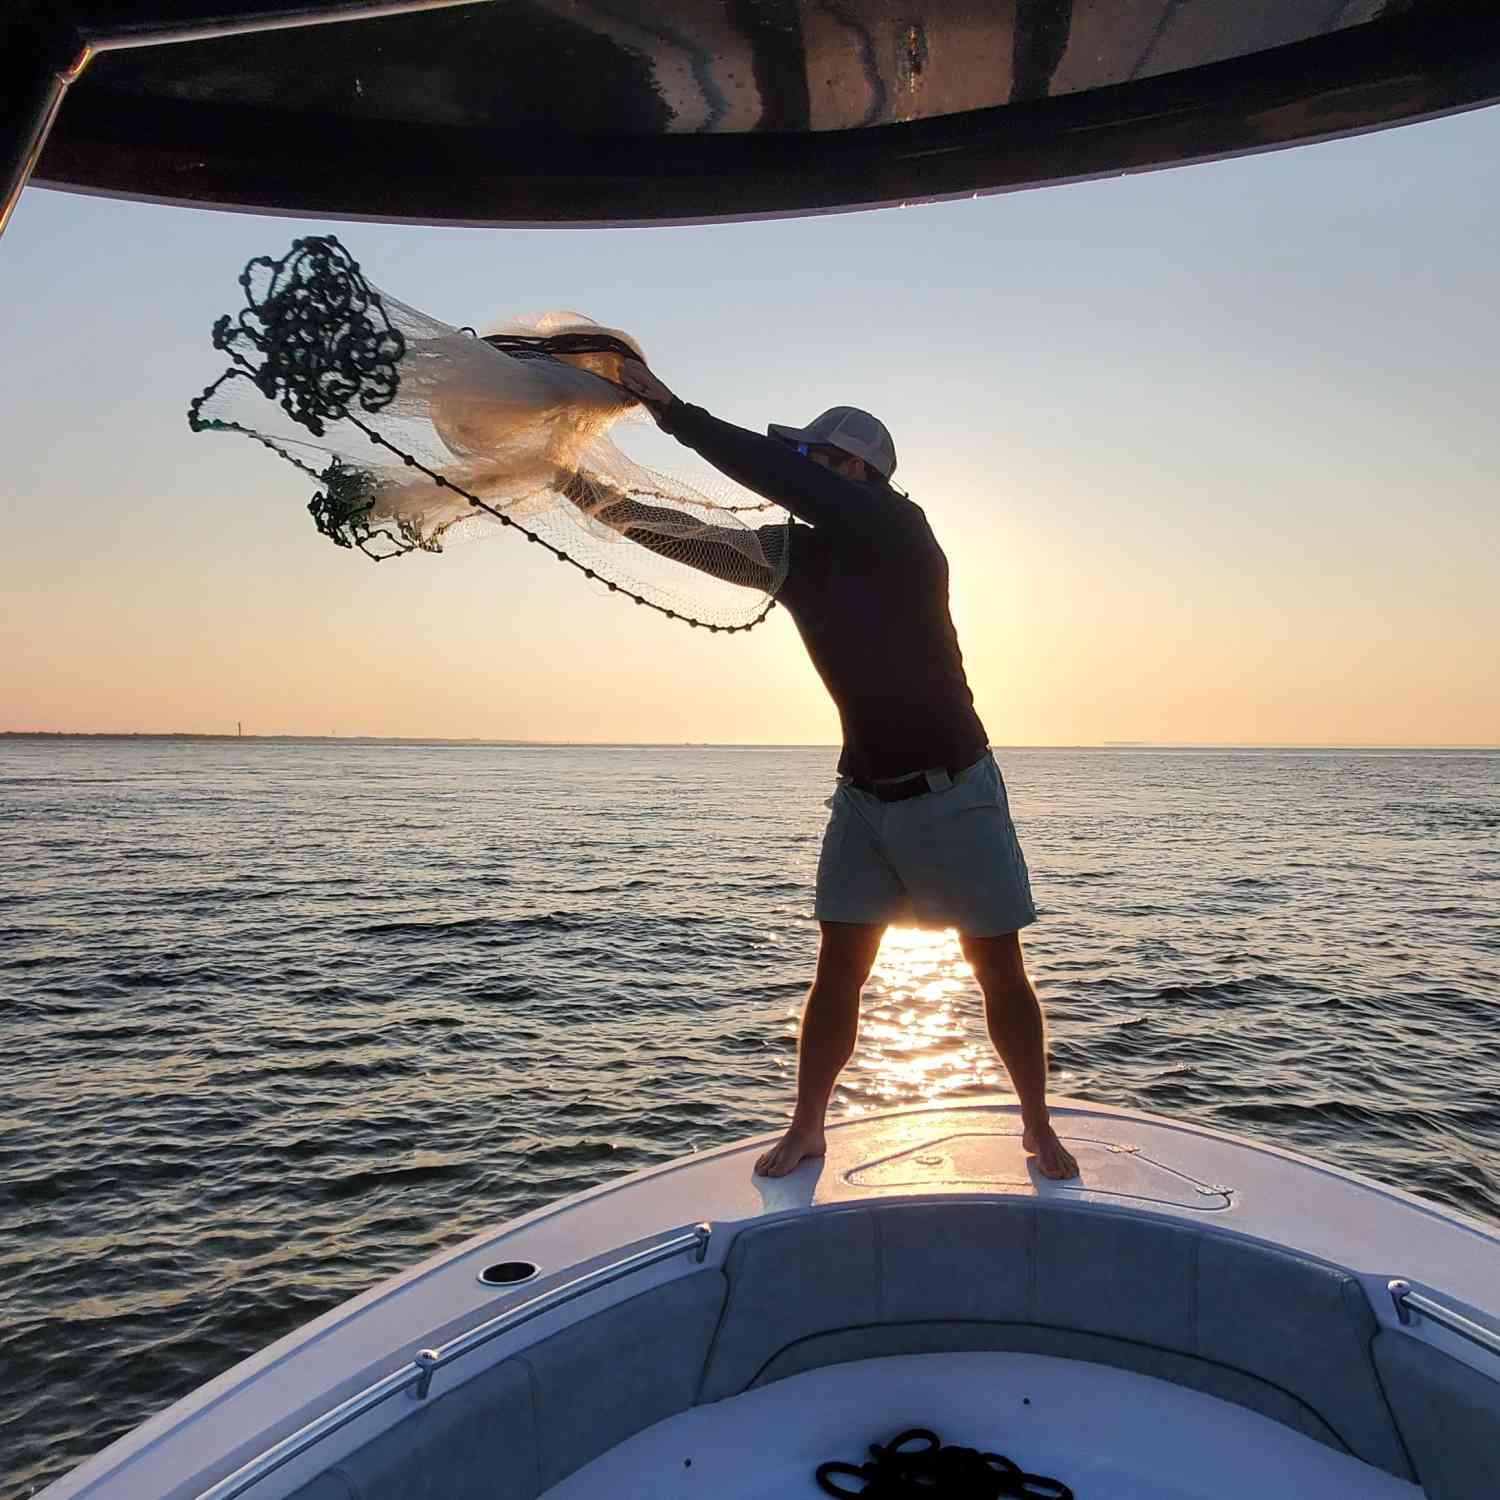 Title: Bait casting at sunrise - On board their Sportsman Heritage 231 Center Console - Location: Charleston Harbor. Participating in the Photo Contest #SportsmanOctober2020